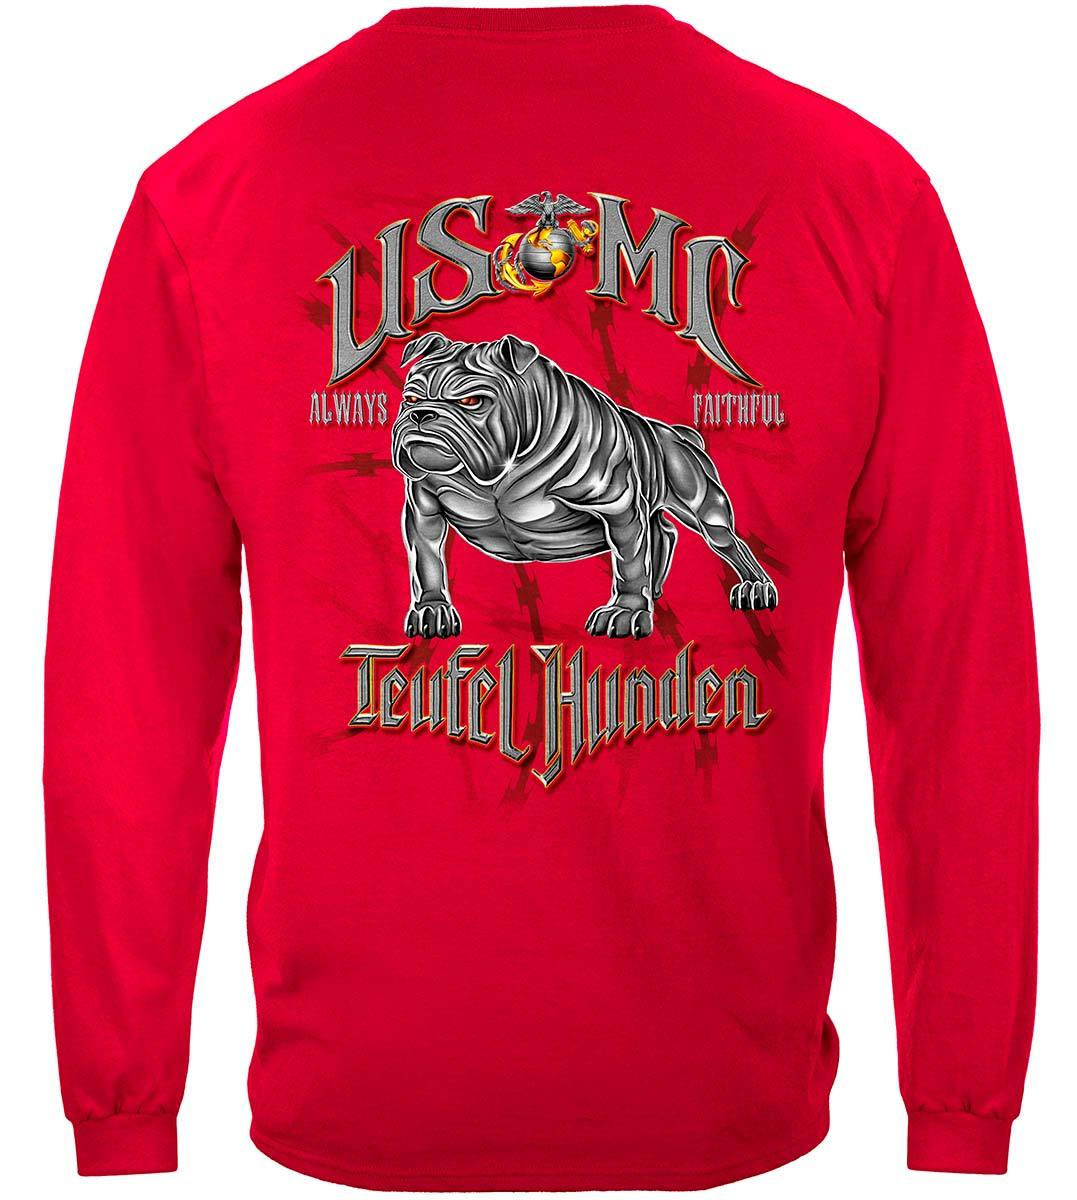 USMC Teufel Hunden Premium Long Sleeves